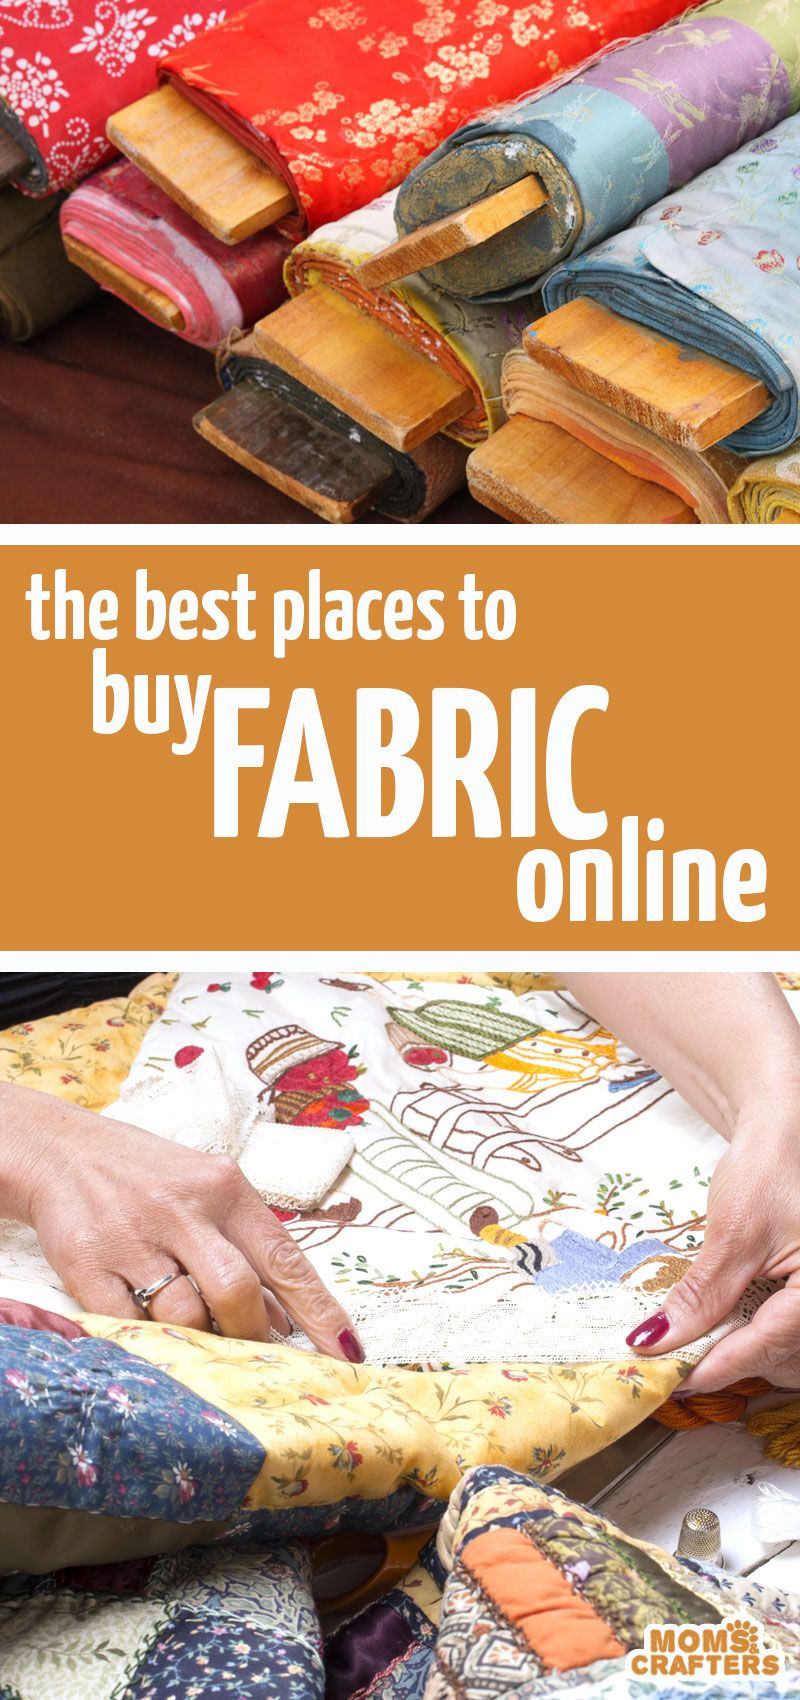 The ultimate list of the best place to buy fabrics online for every need!